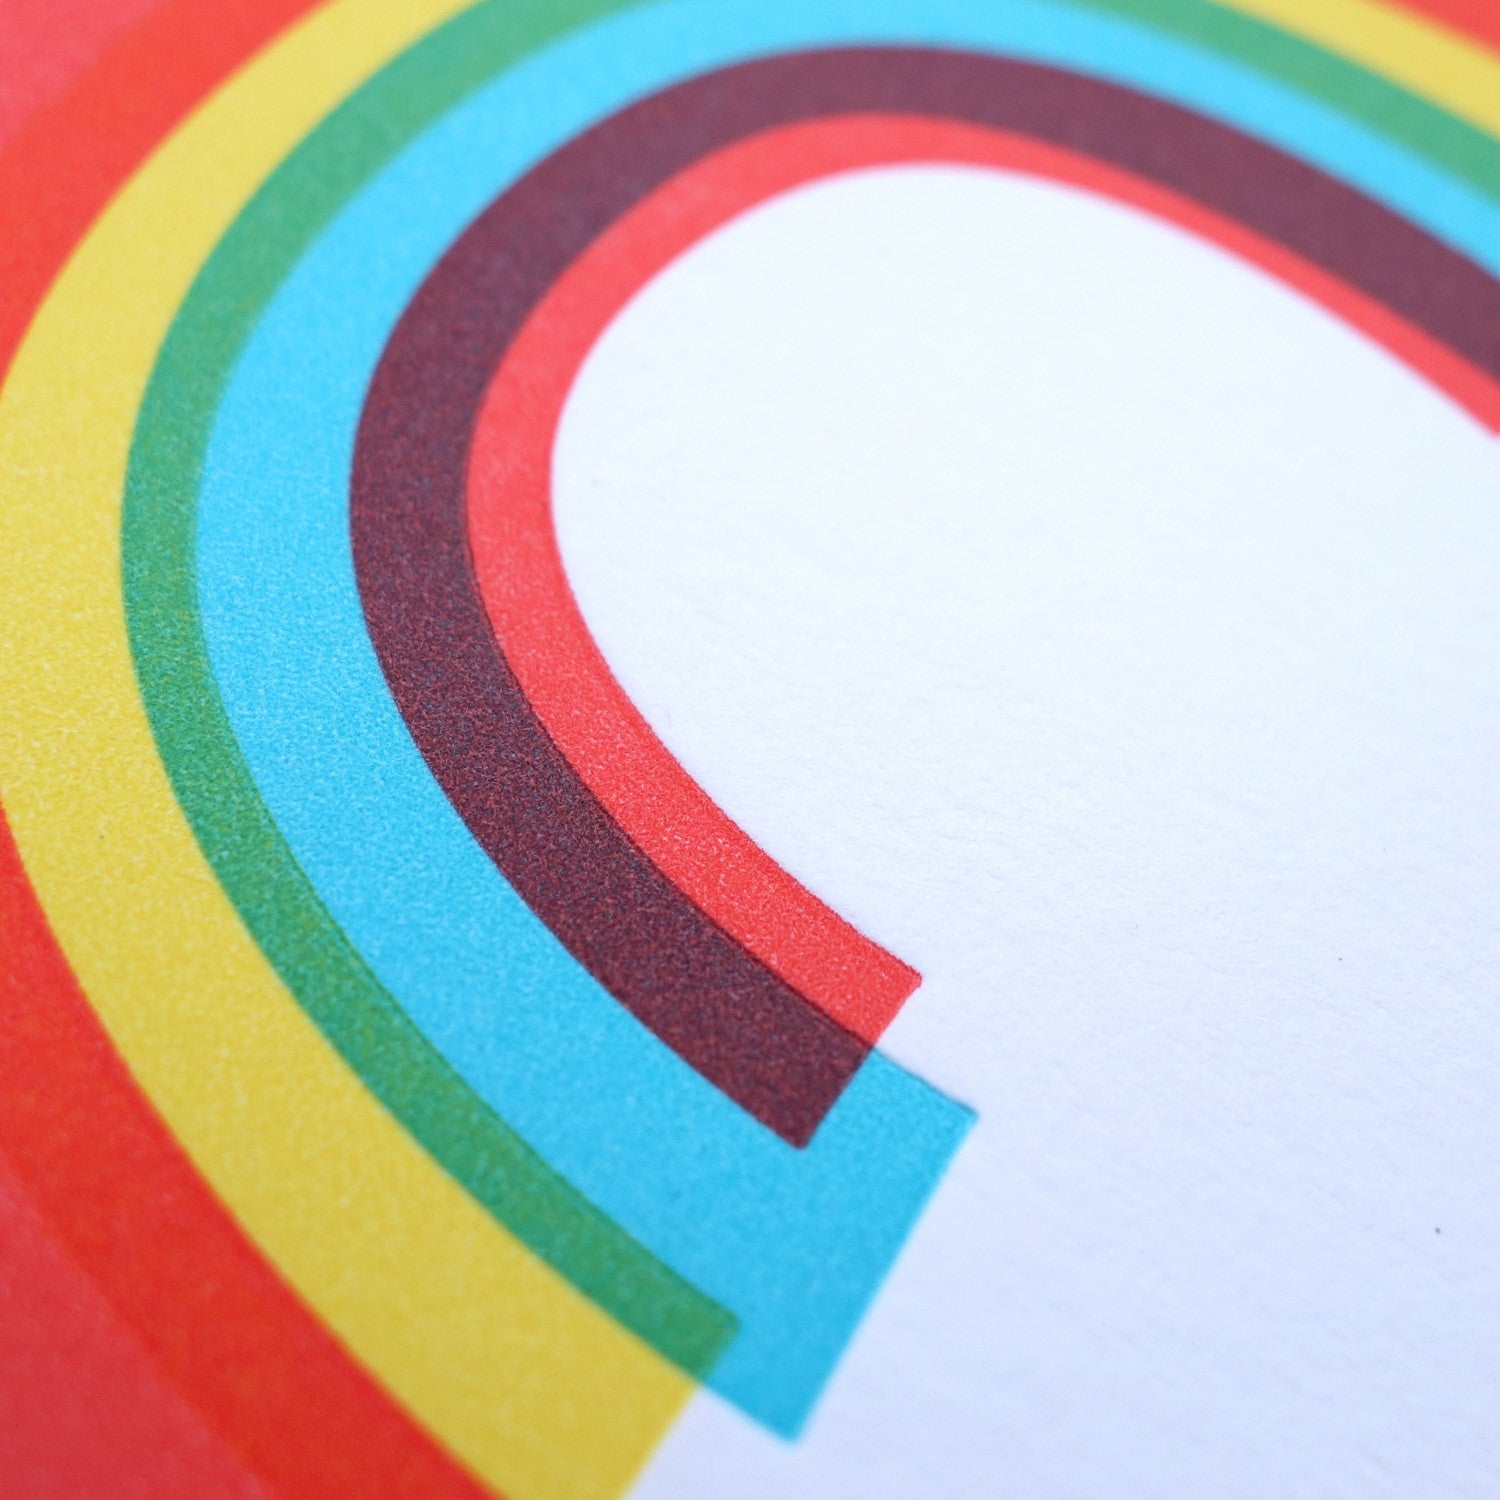 Detail of the letterpress texture of a white greeting card with a rainbow